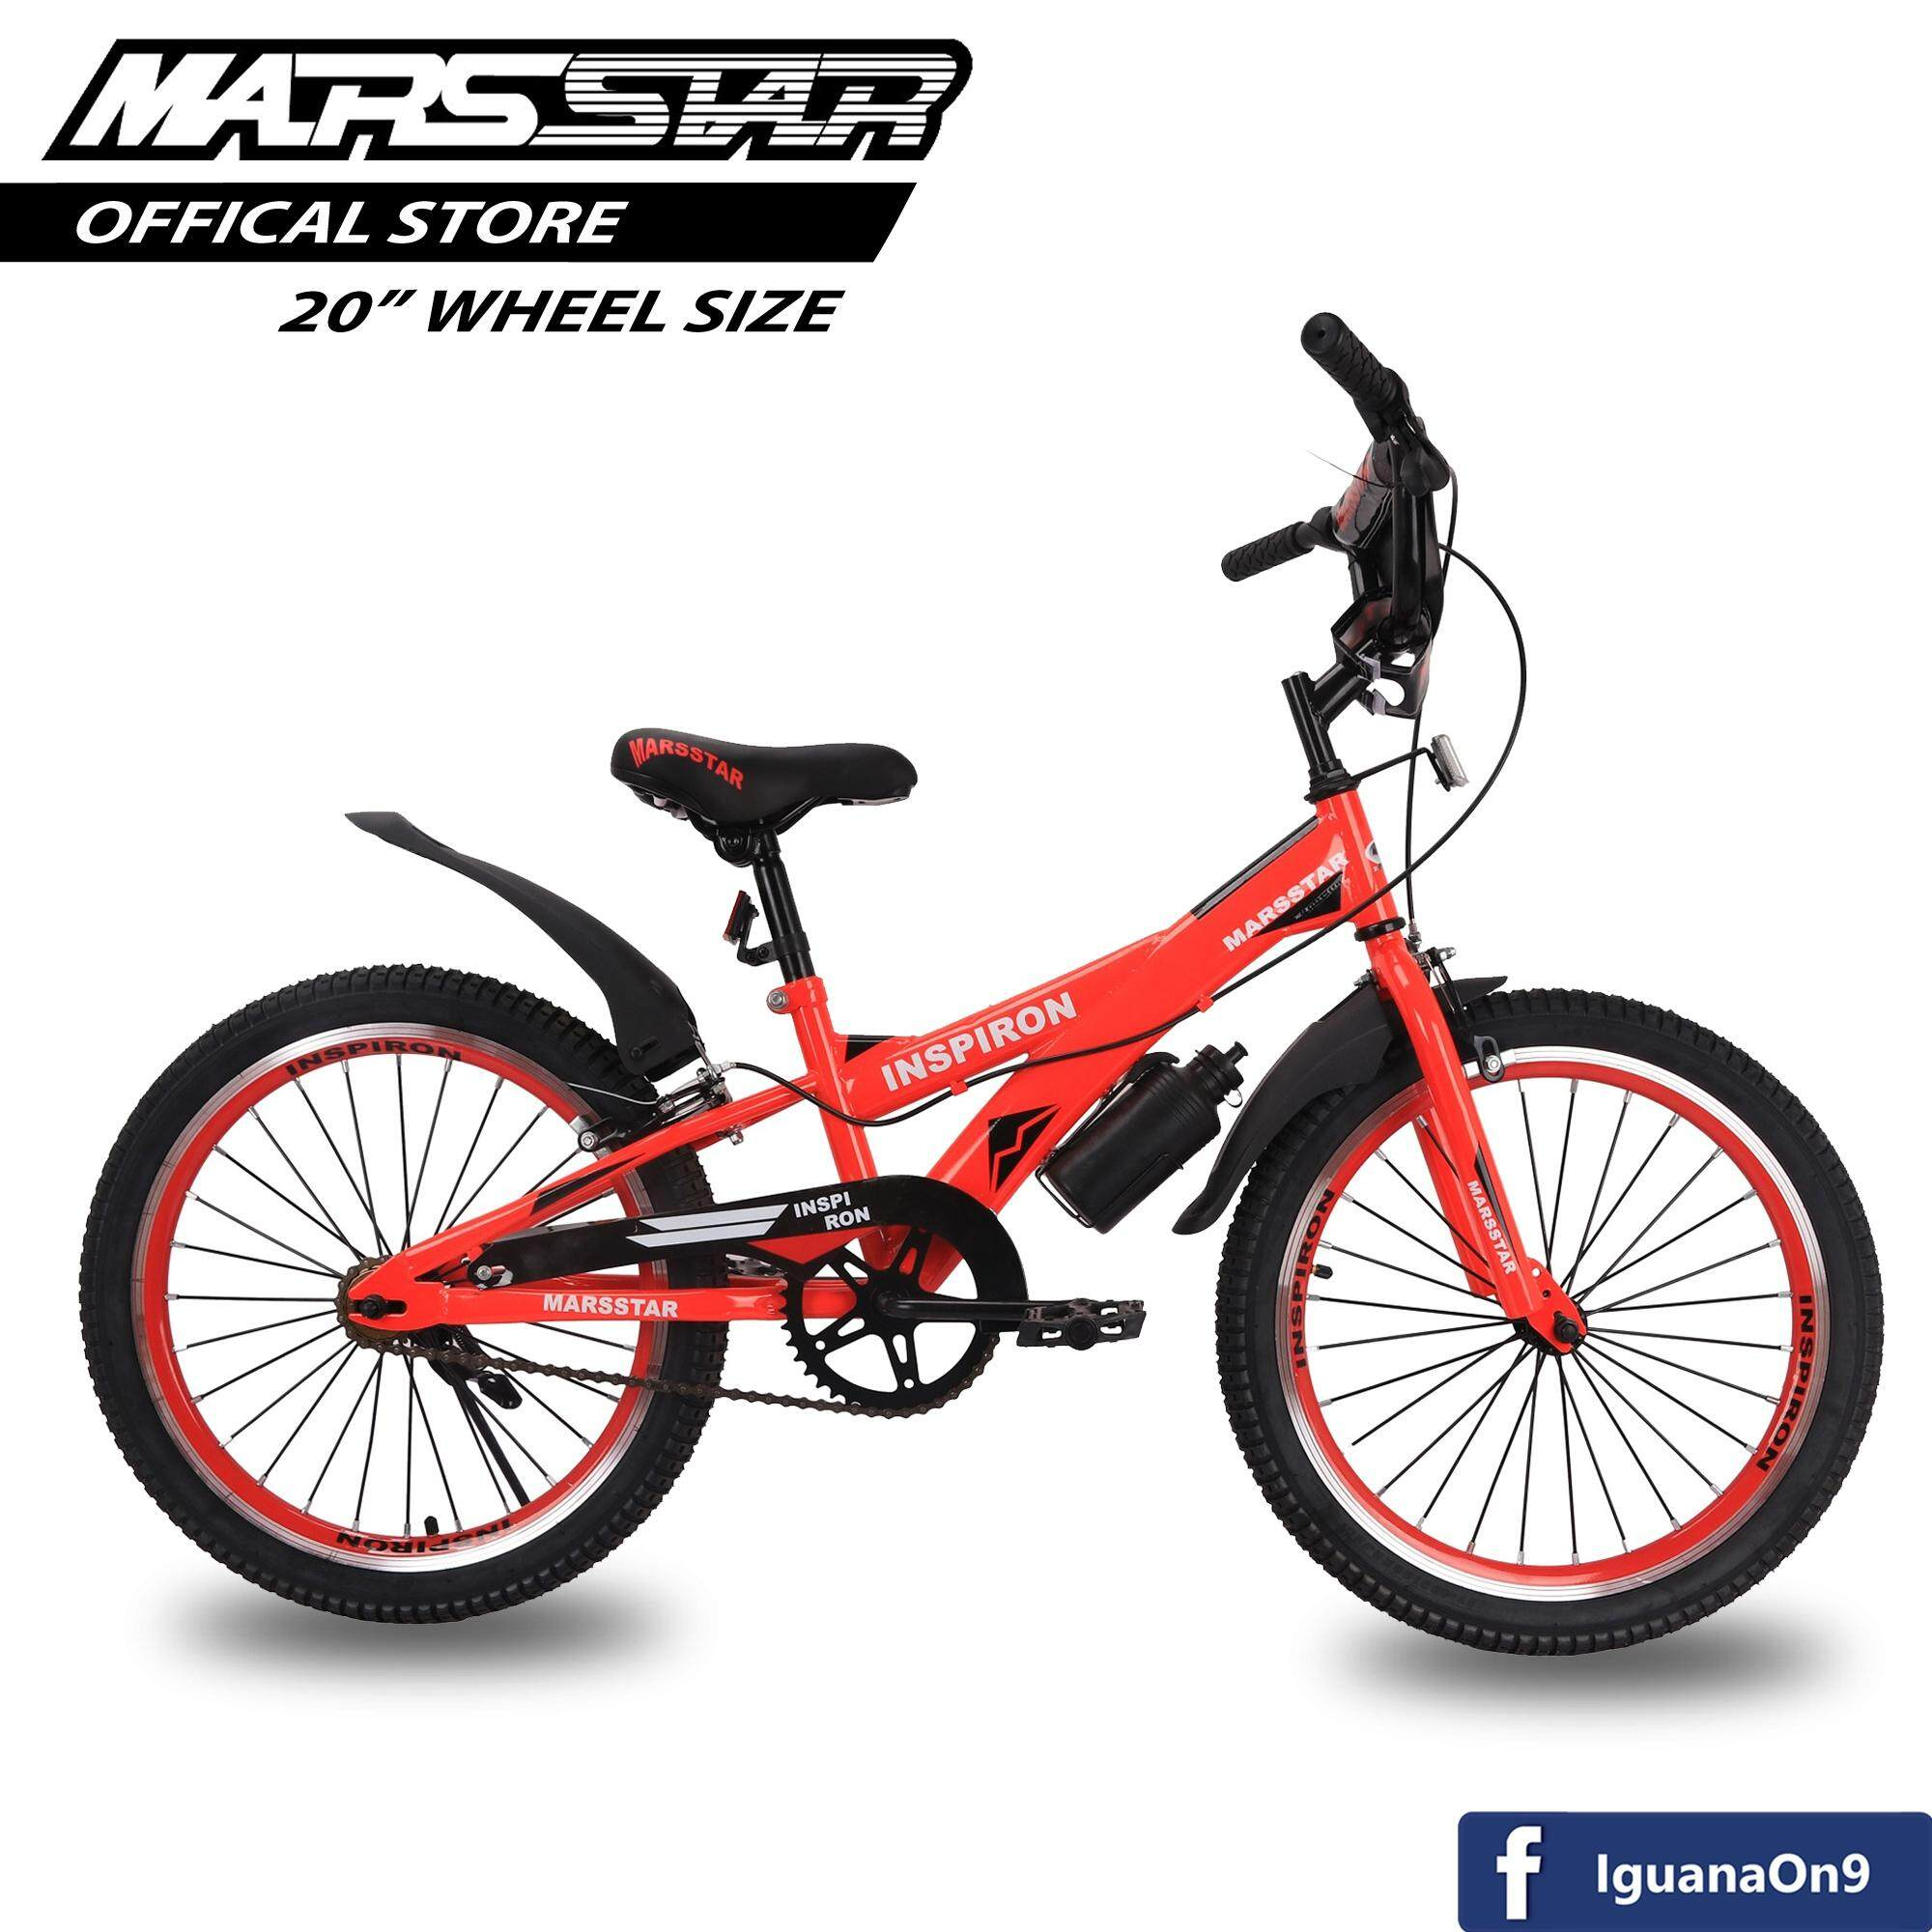 MARSSTAR 20˝ Double Alloy Rim Bicycle 2001 INSPIRON (Neon Red) with Caliper Brake